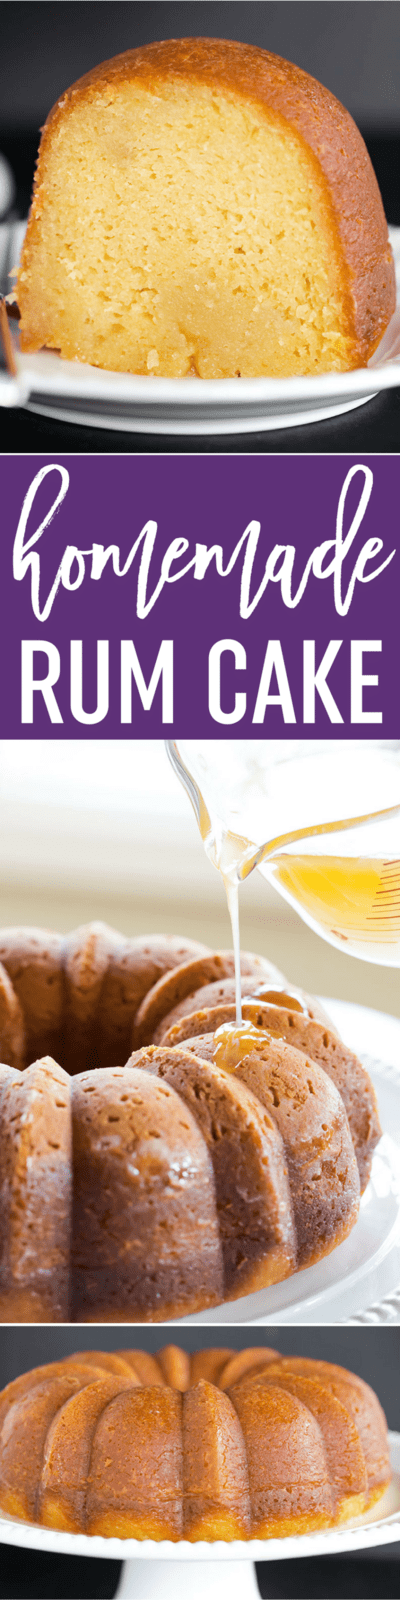 Rum cake recipe without pudding mix